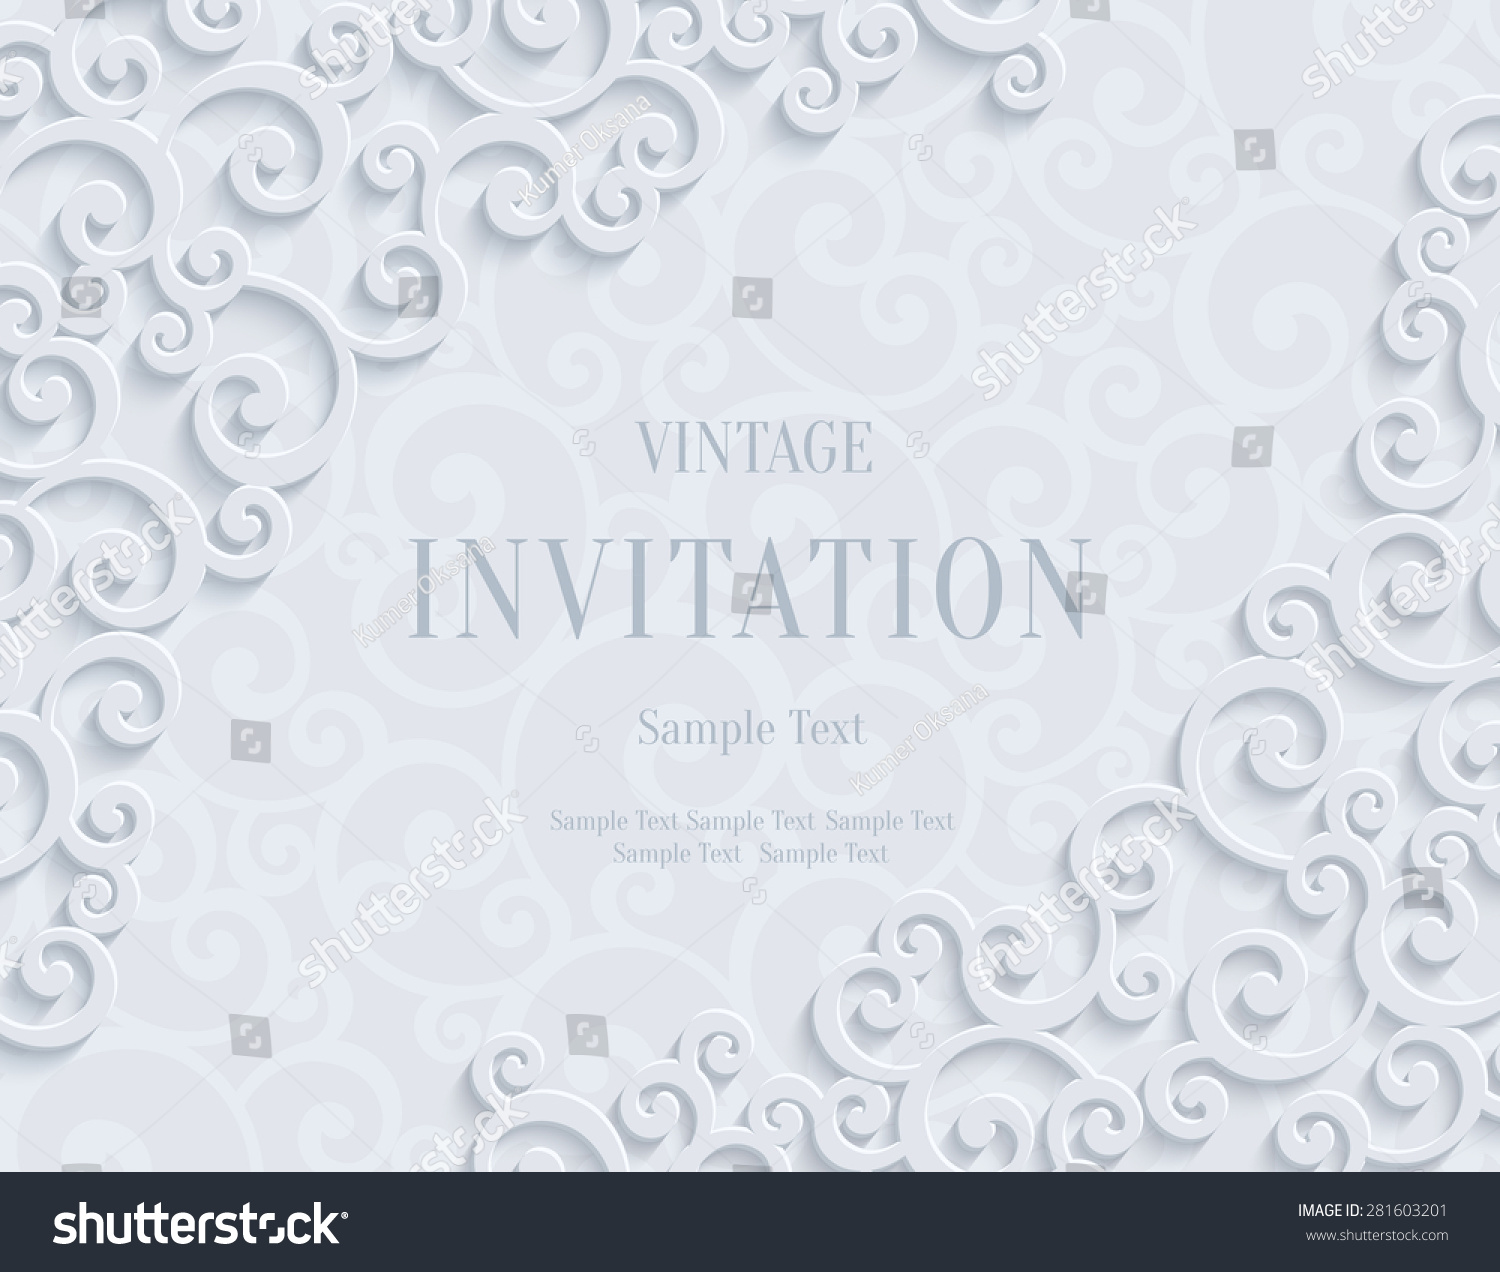 White 3d Floral Swirl Horizontal Background Stock Vector 281603201